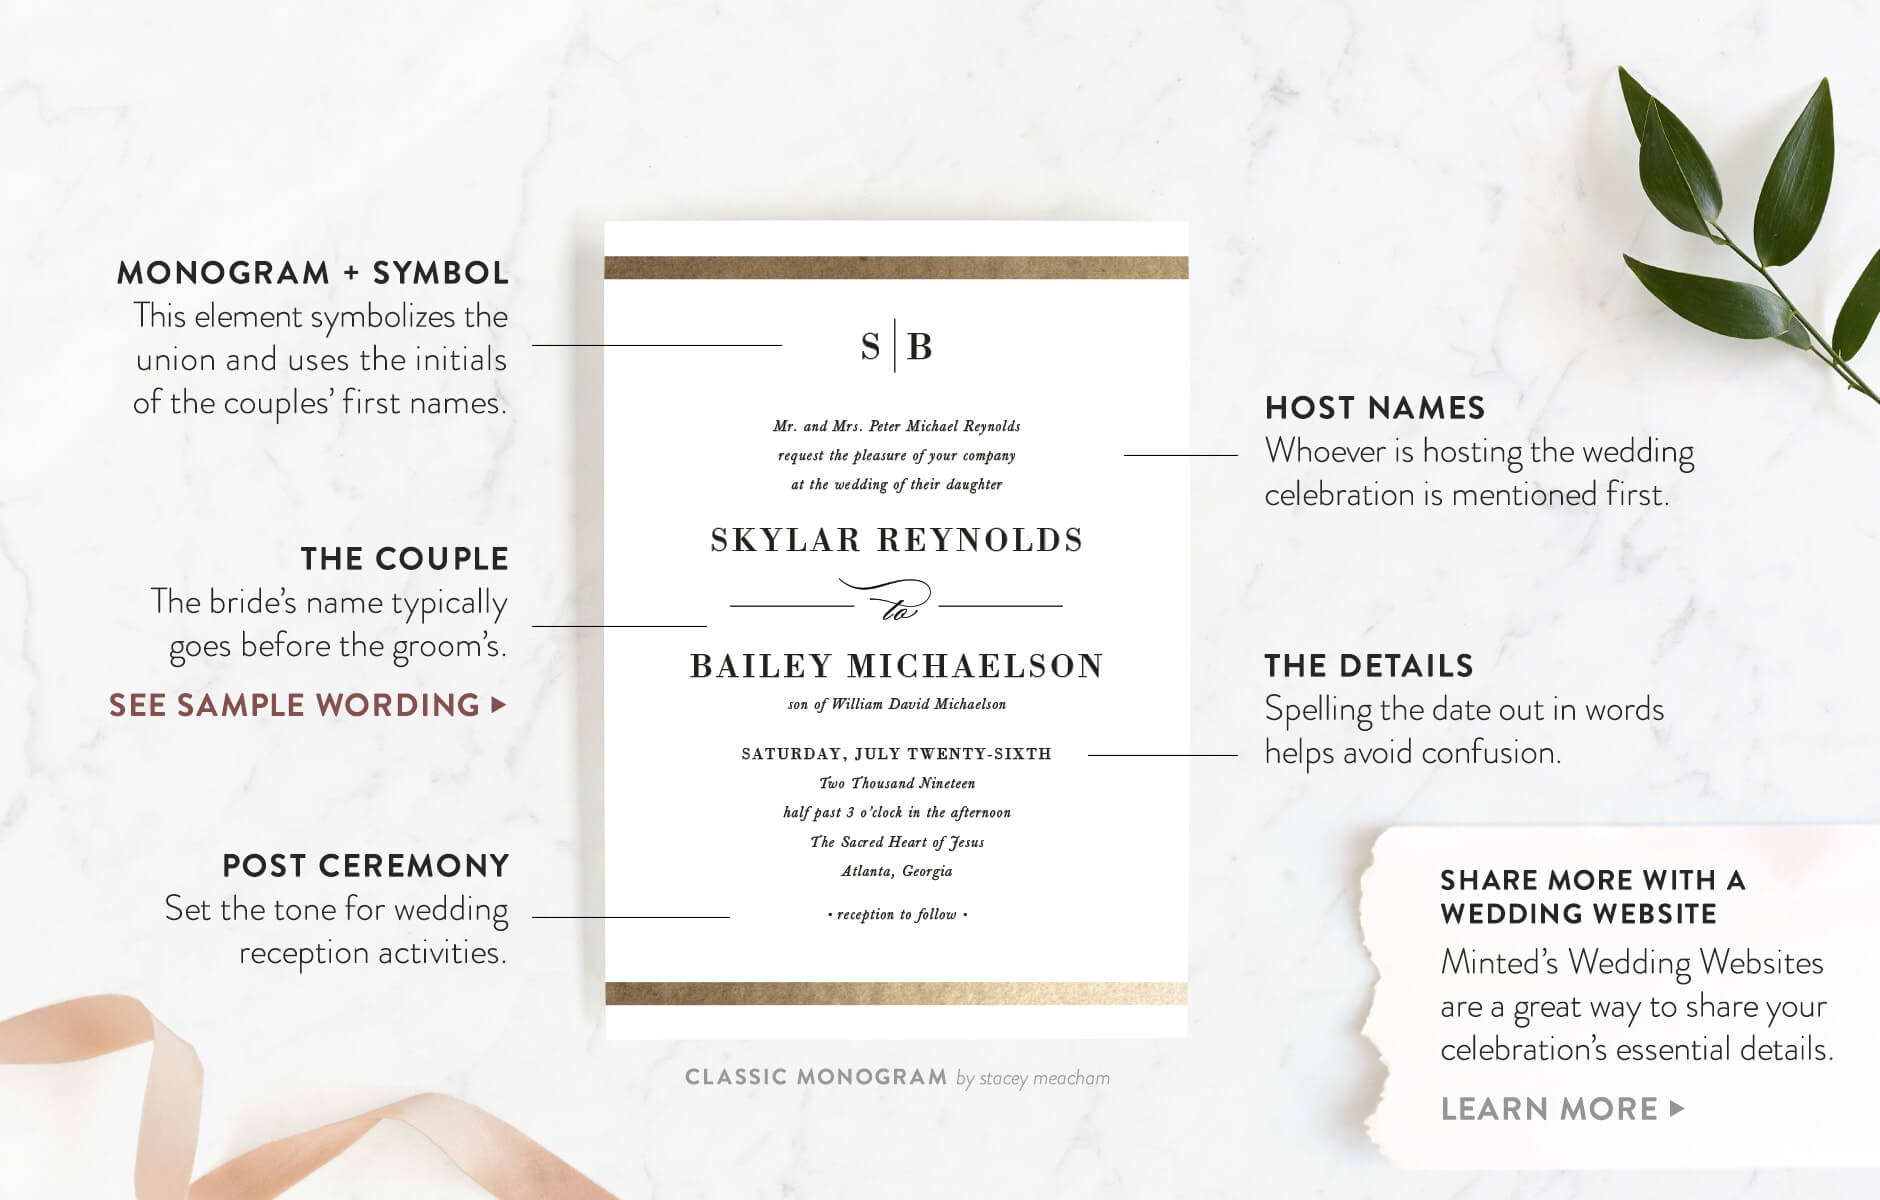 001 Shocking Wedding Invite Wording Template Photo  Templates Chinese Invitation Microsoft Word From Bride And Groom Example InvitingFull